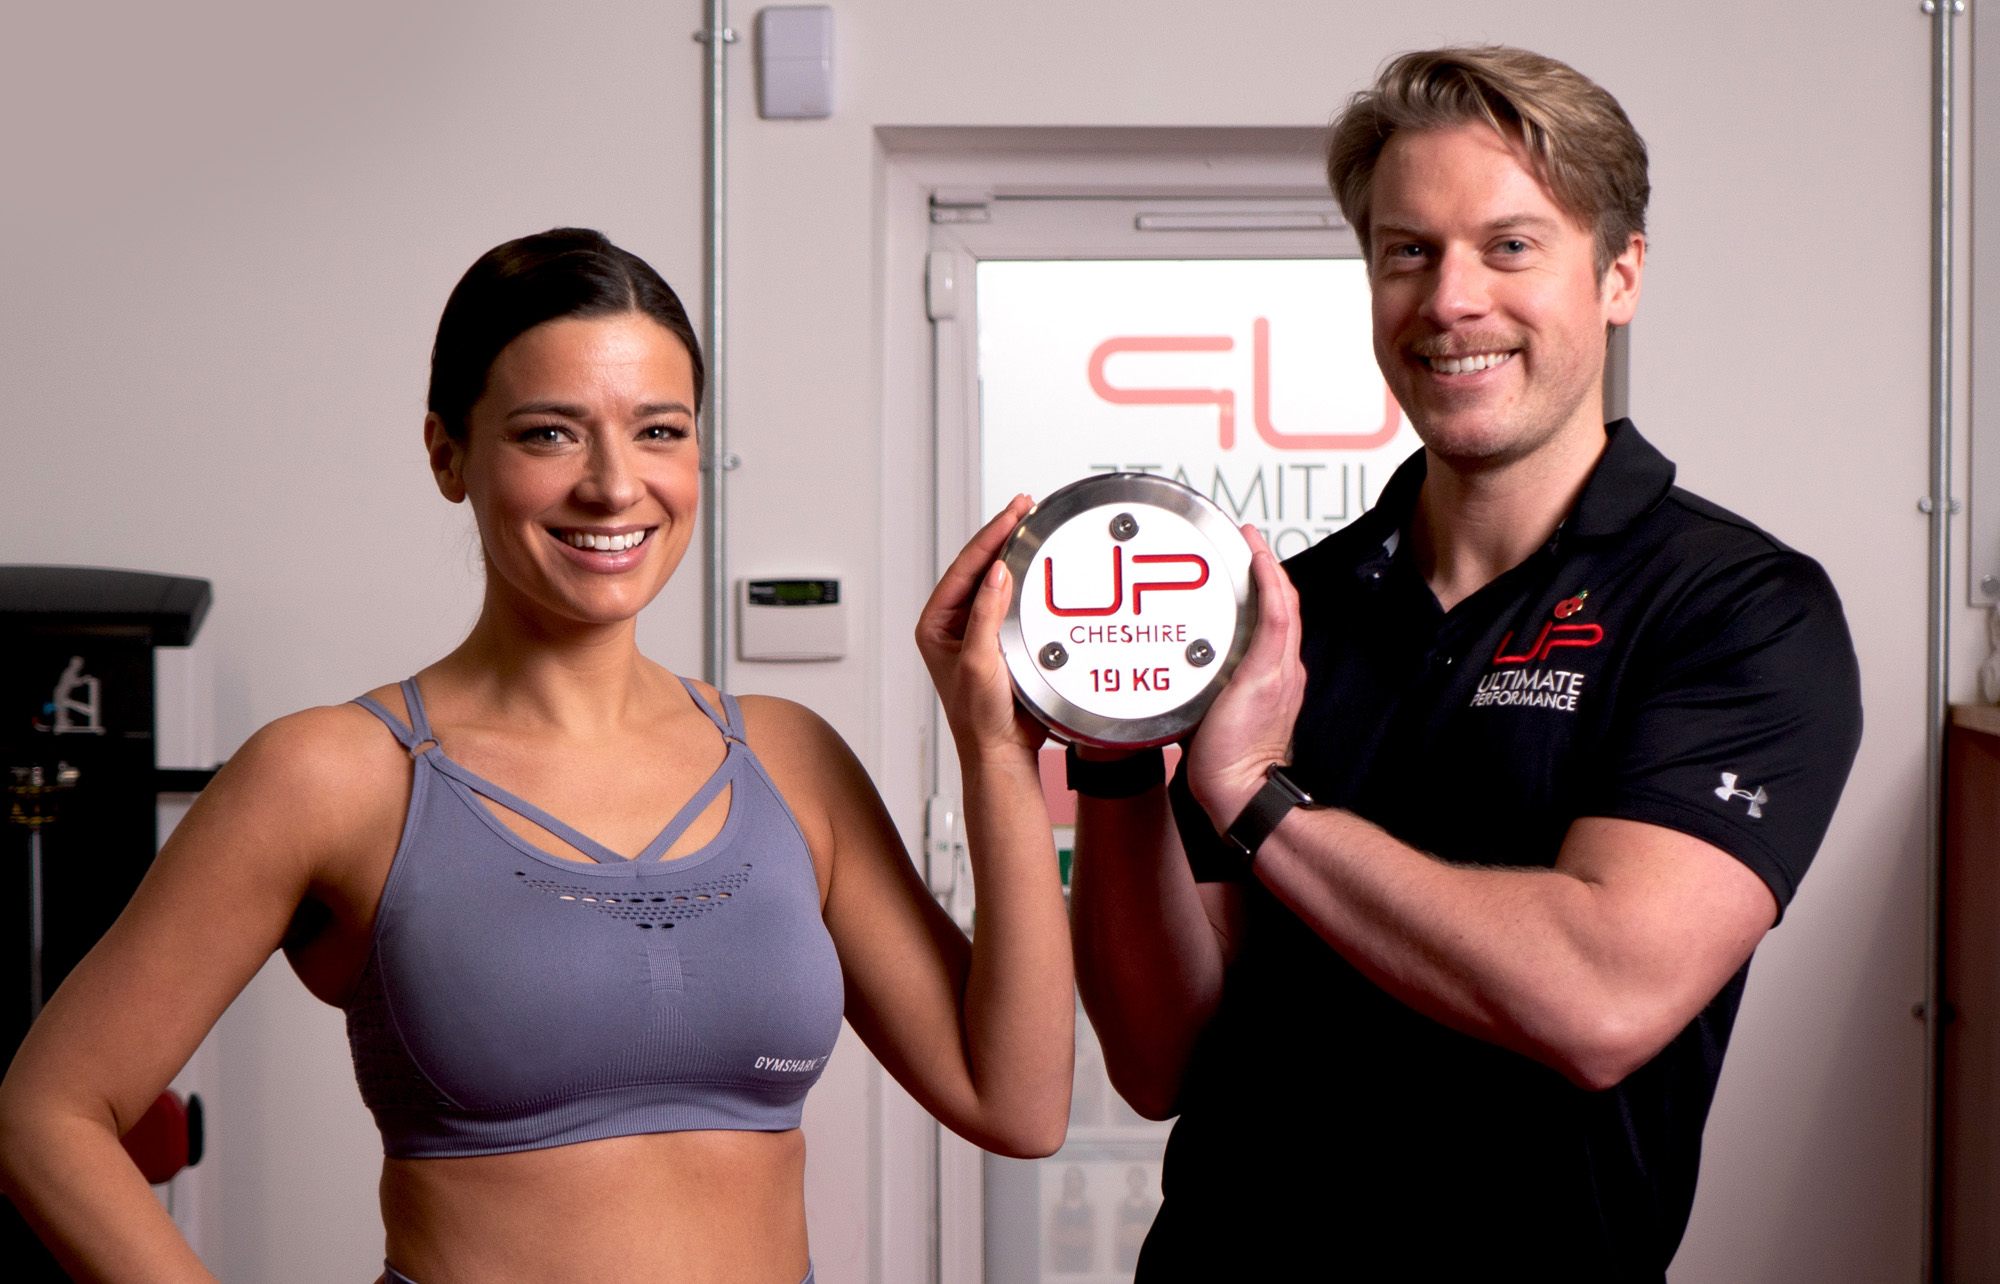 Sophie Austin posing with her U.P. trainer, Jimmy.